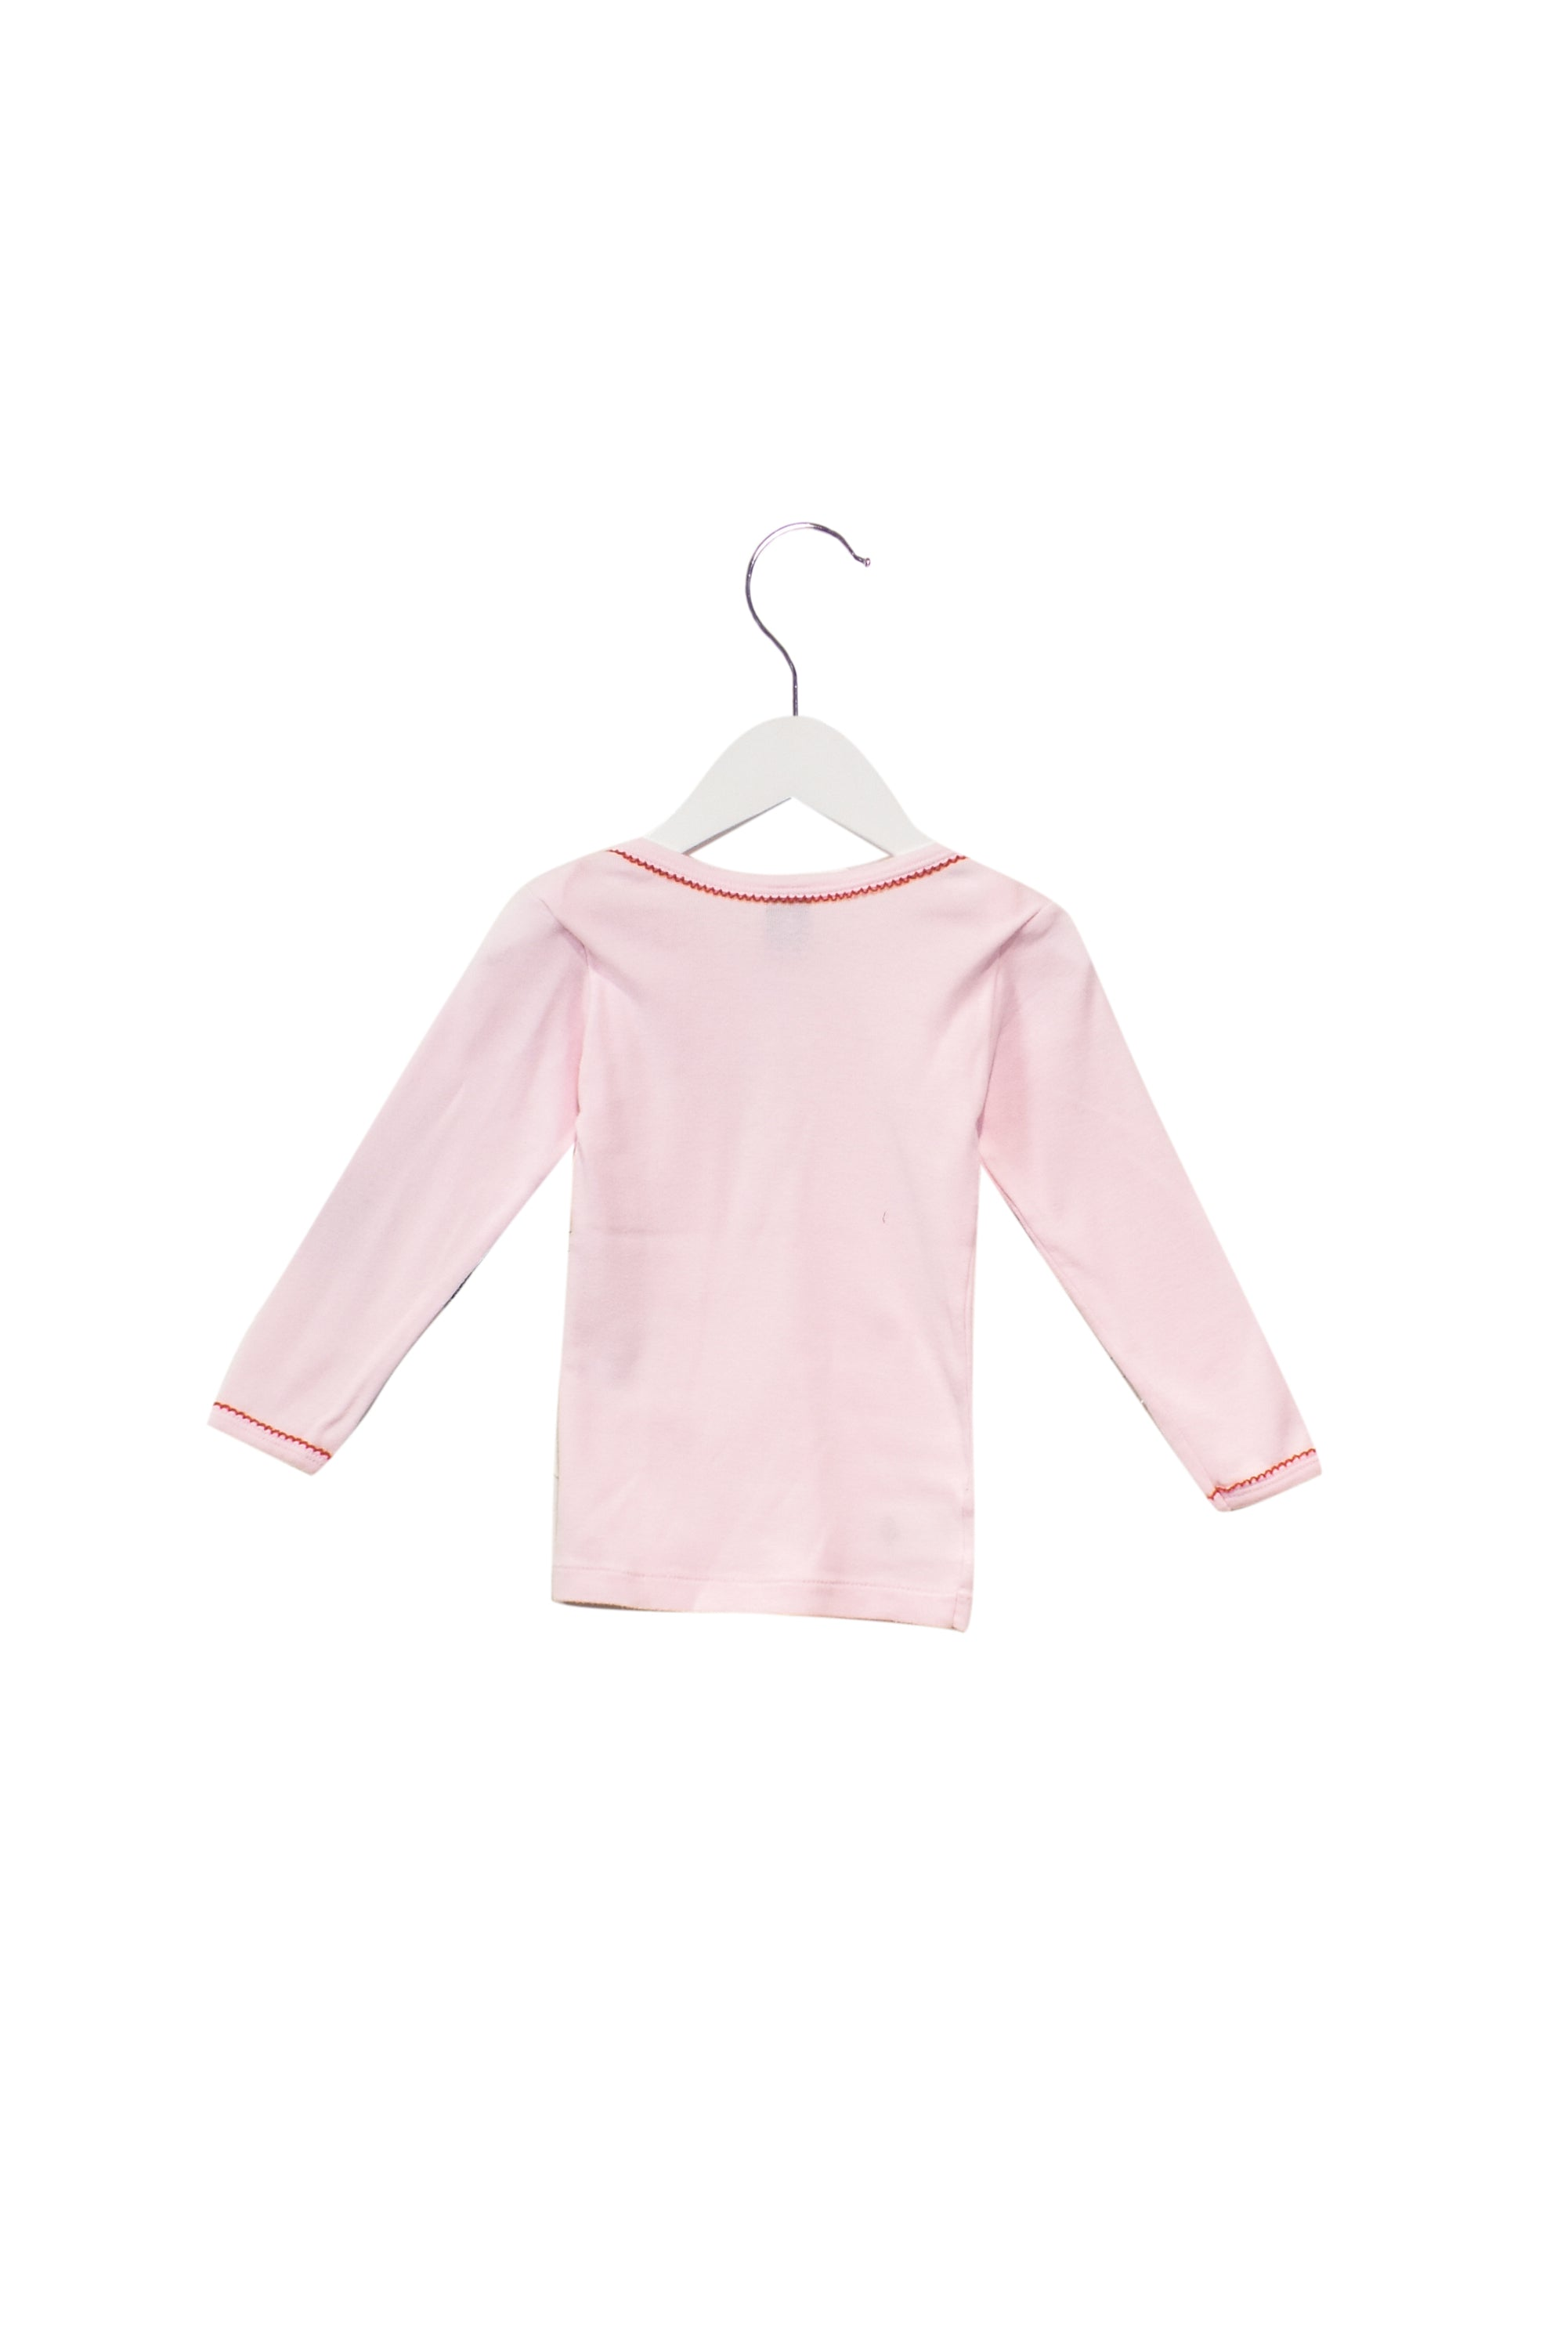 10025947 Petit Bateau Kids~Top 3T at Retykle